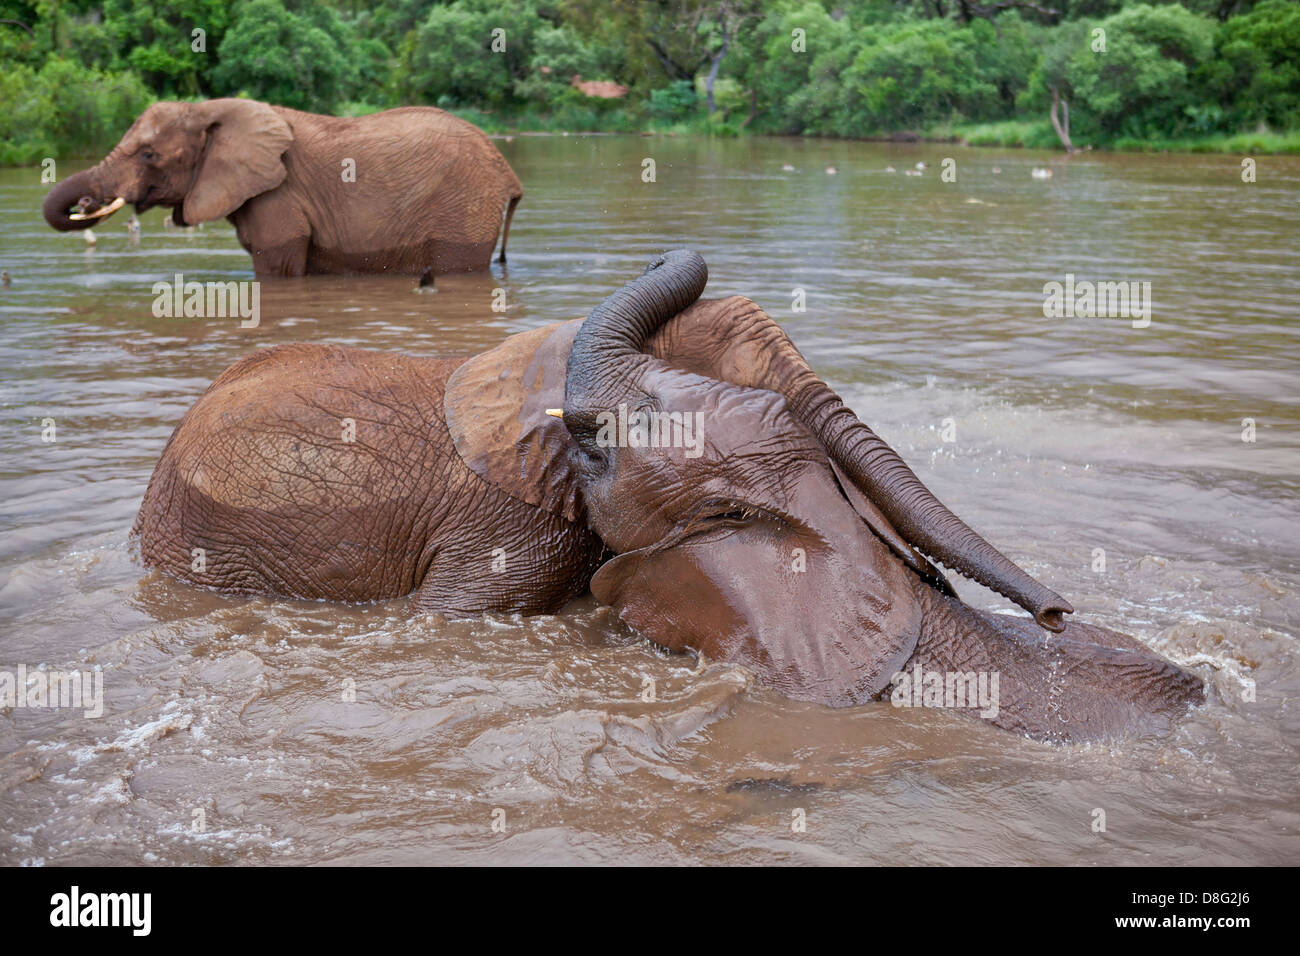 African elephant (Loxodonta africana)Young calves playing in water.South Africa - Stock Image